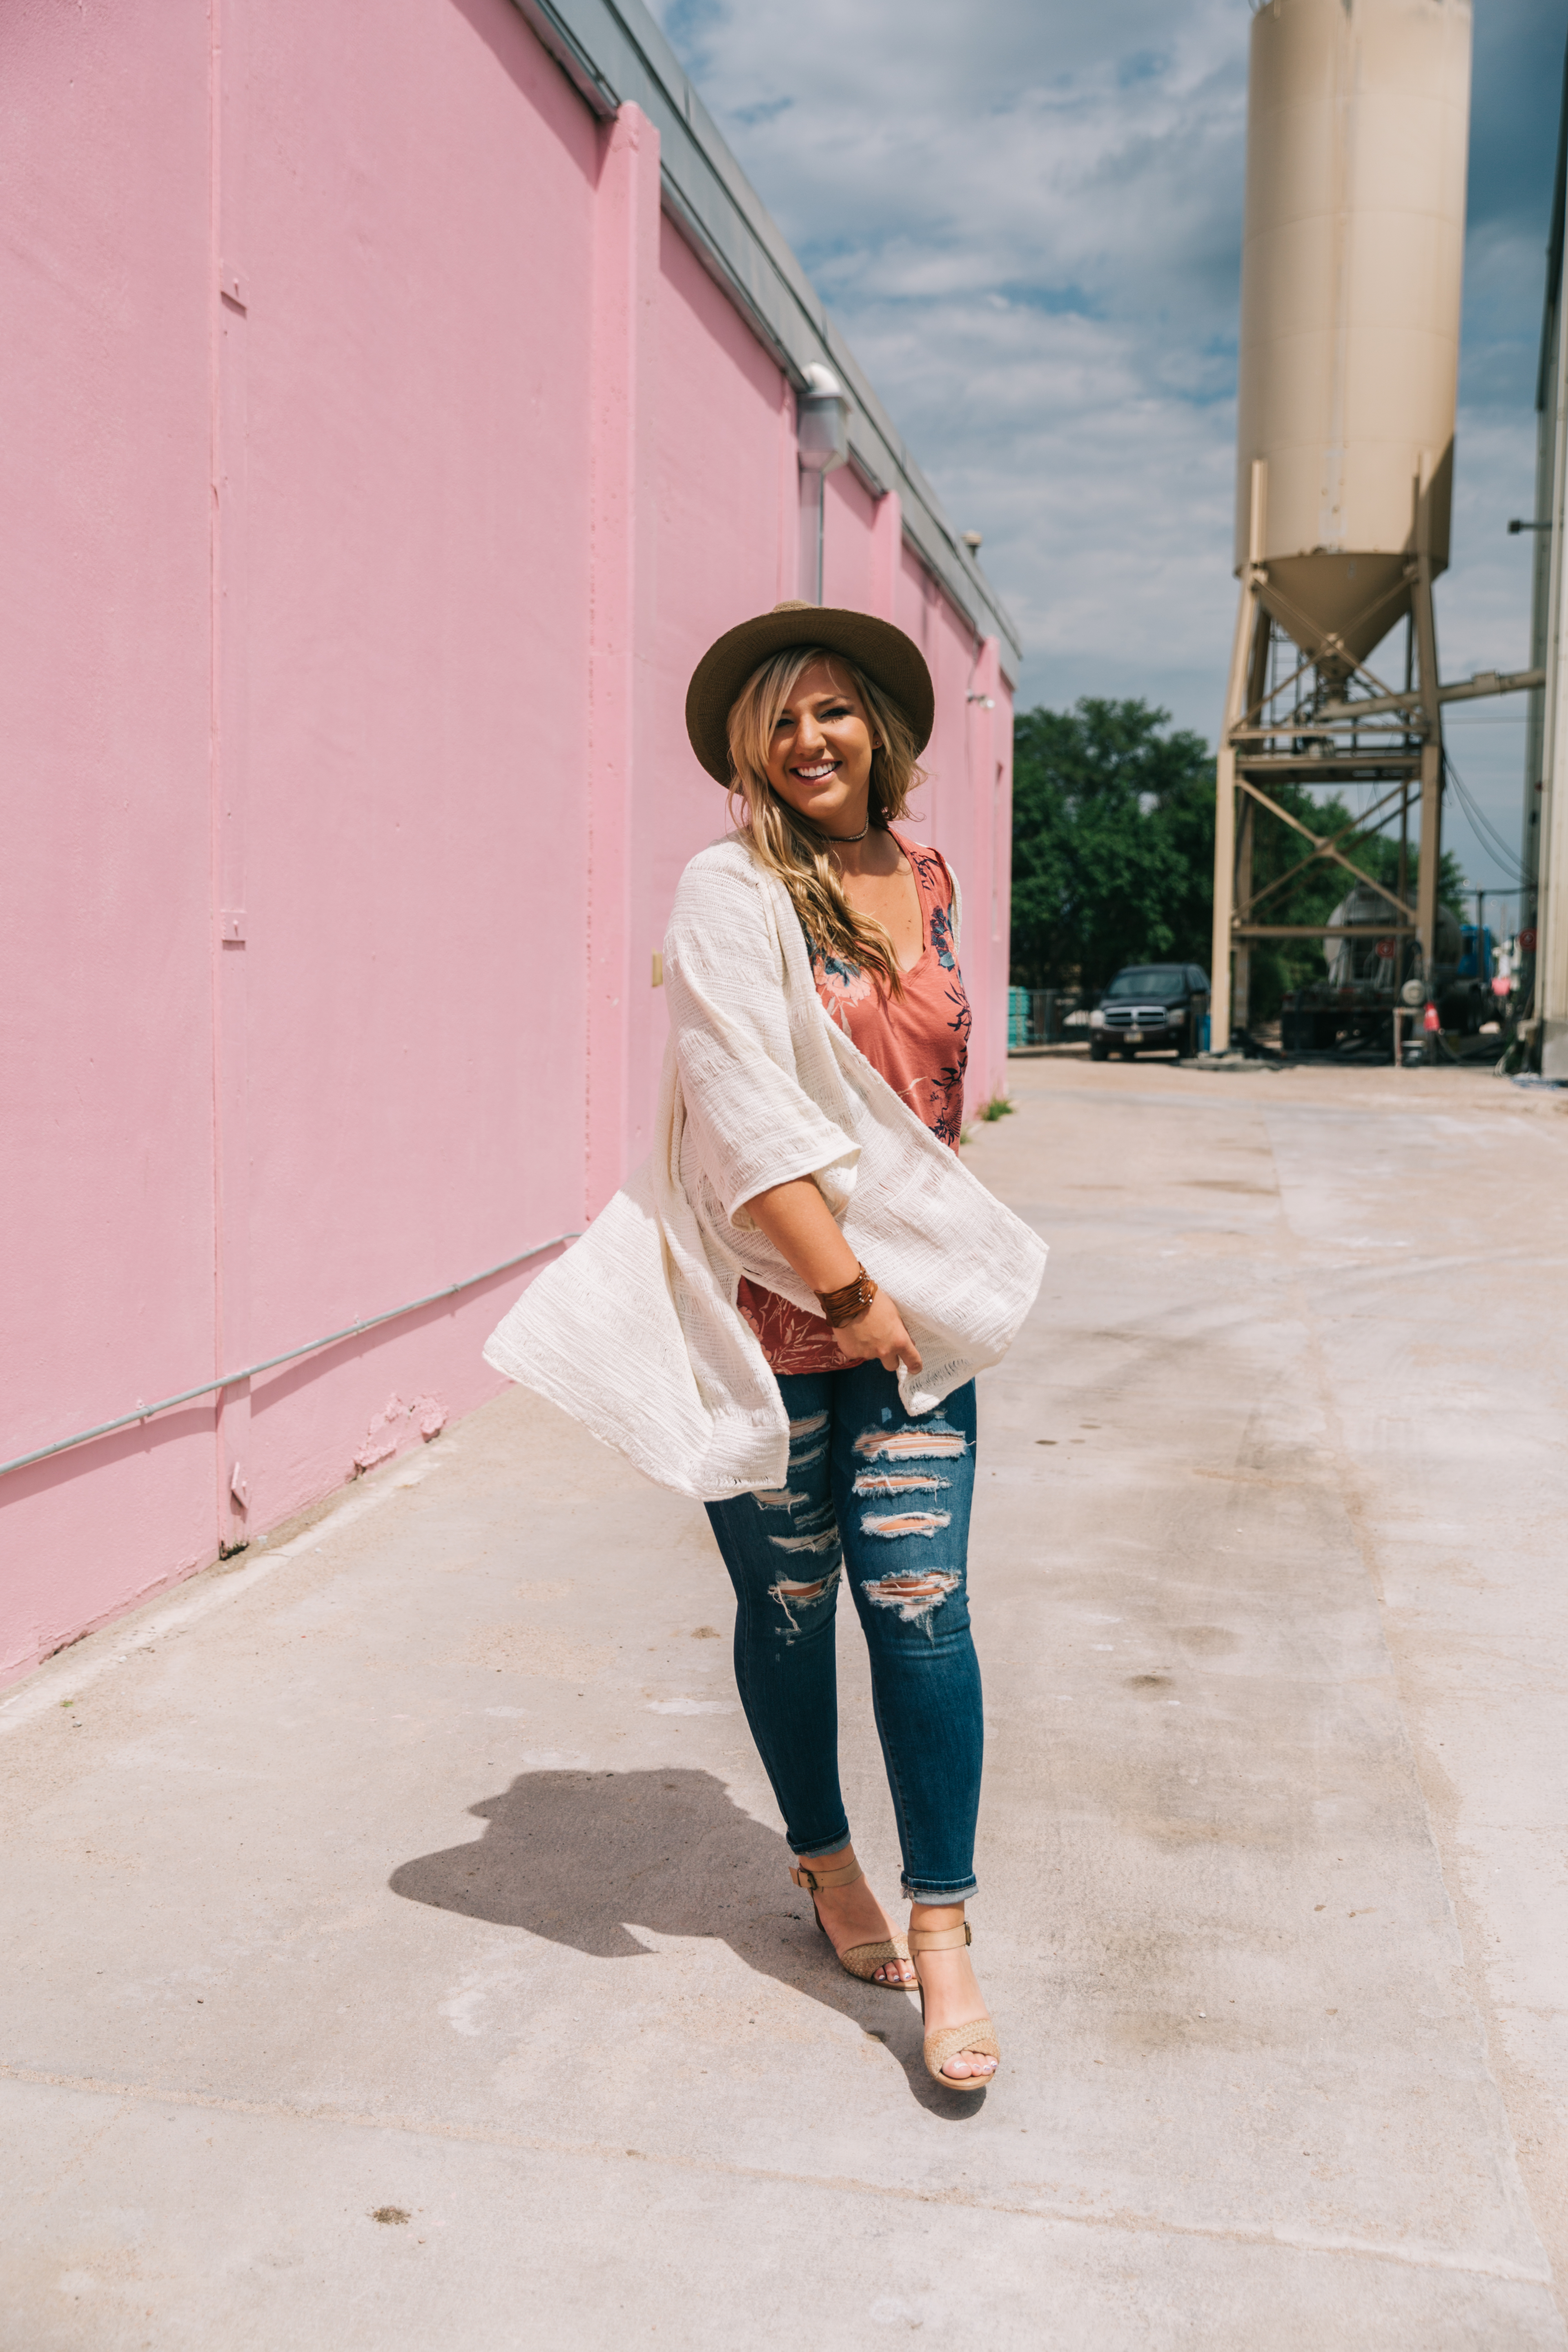 Kimonos and tank top styled with destructed jeans and a hat = yes